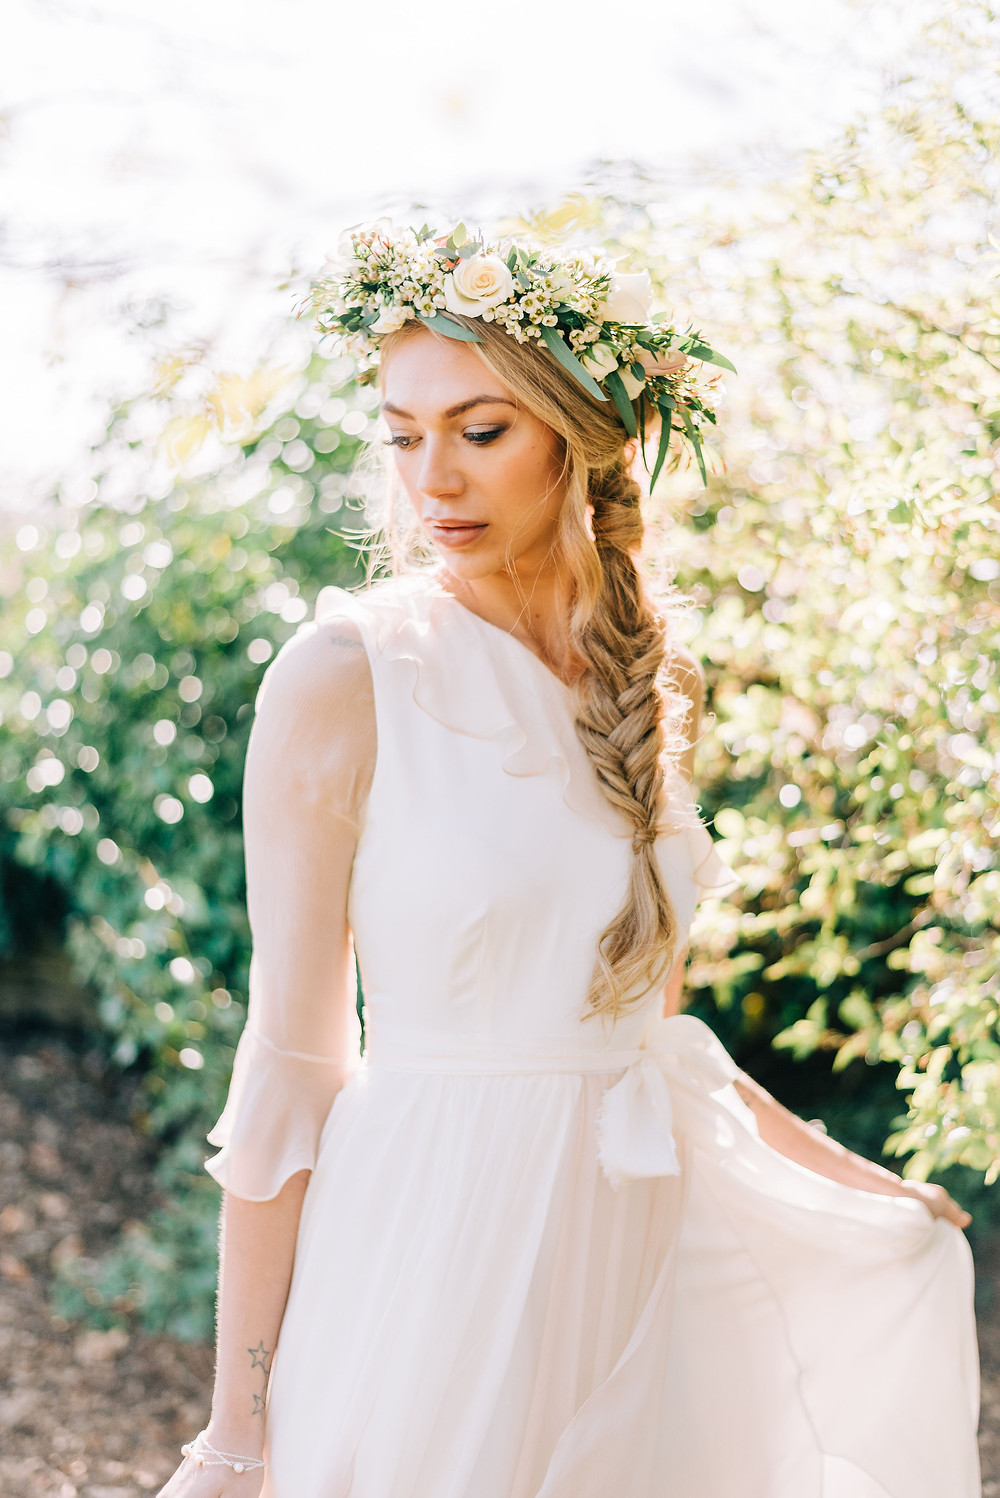 Boho wedding dress that is ethical Jessica Turner Designs, made partly bamboo and silk